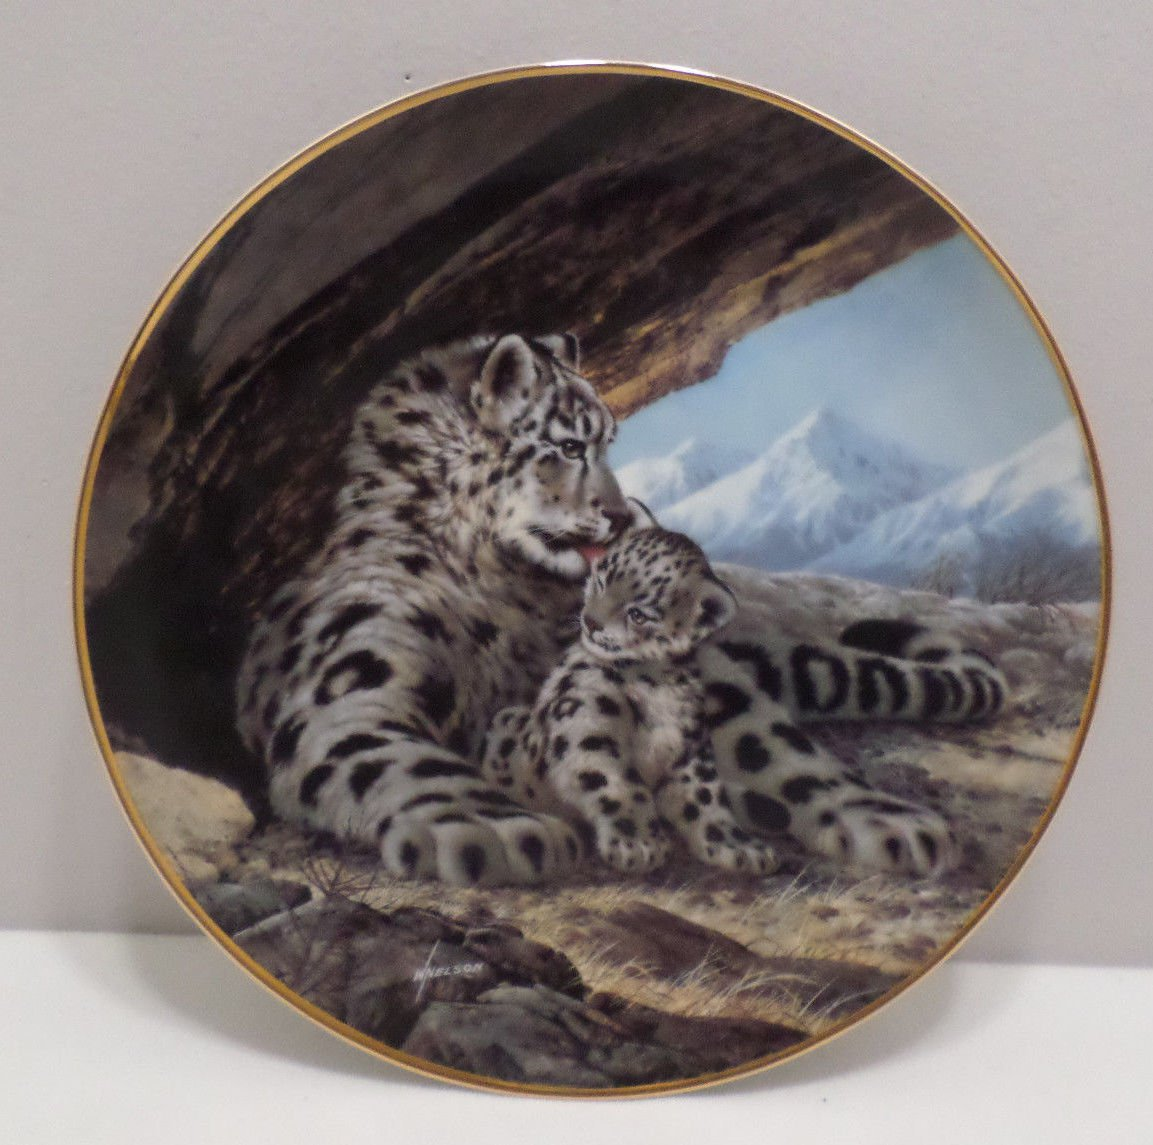 1989 Collector Plate The Snow Leopard by Will Nelson, Bradford Exchange